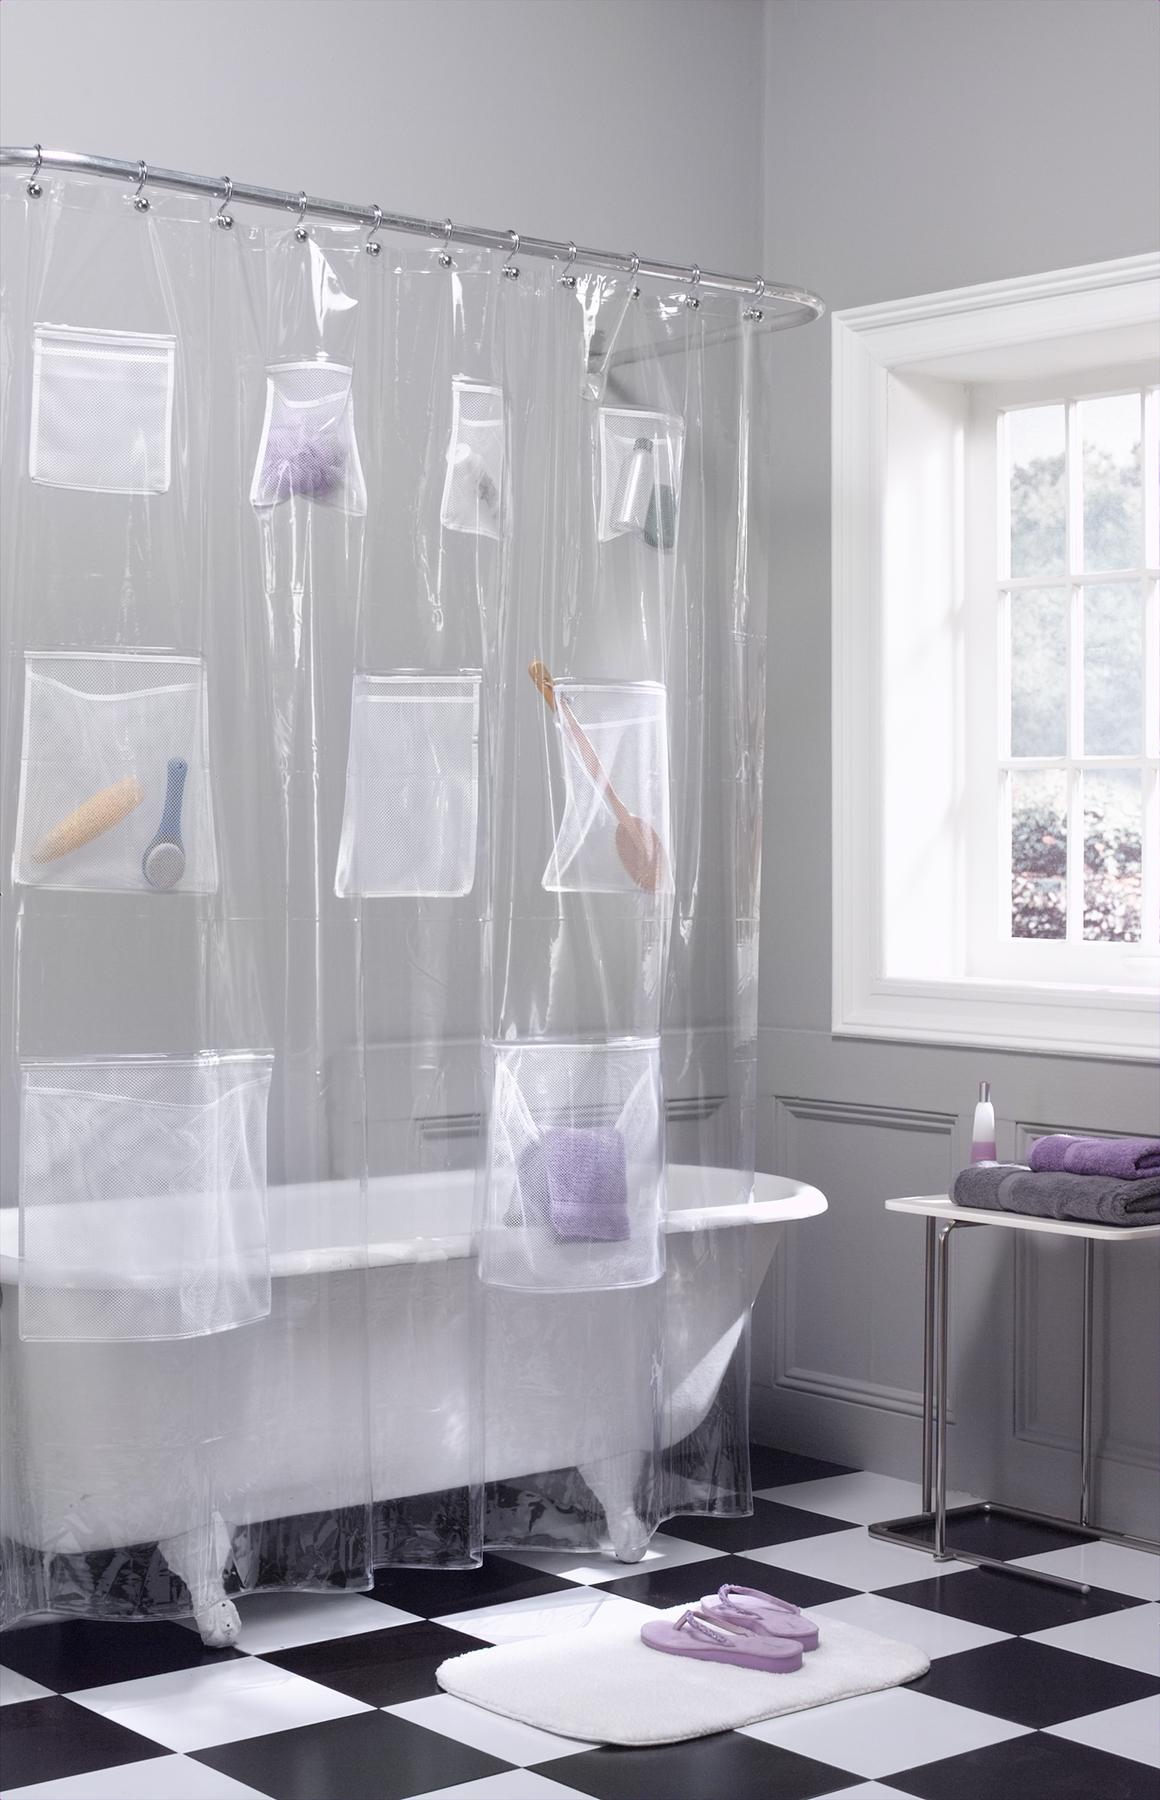 Fun Shower Curtains For Adults - From the manufacturer